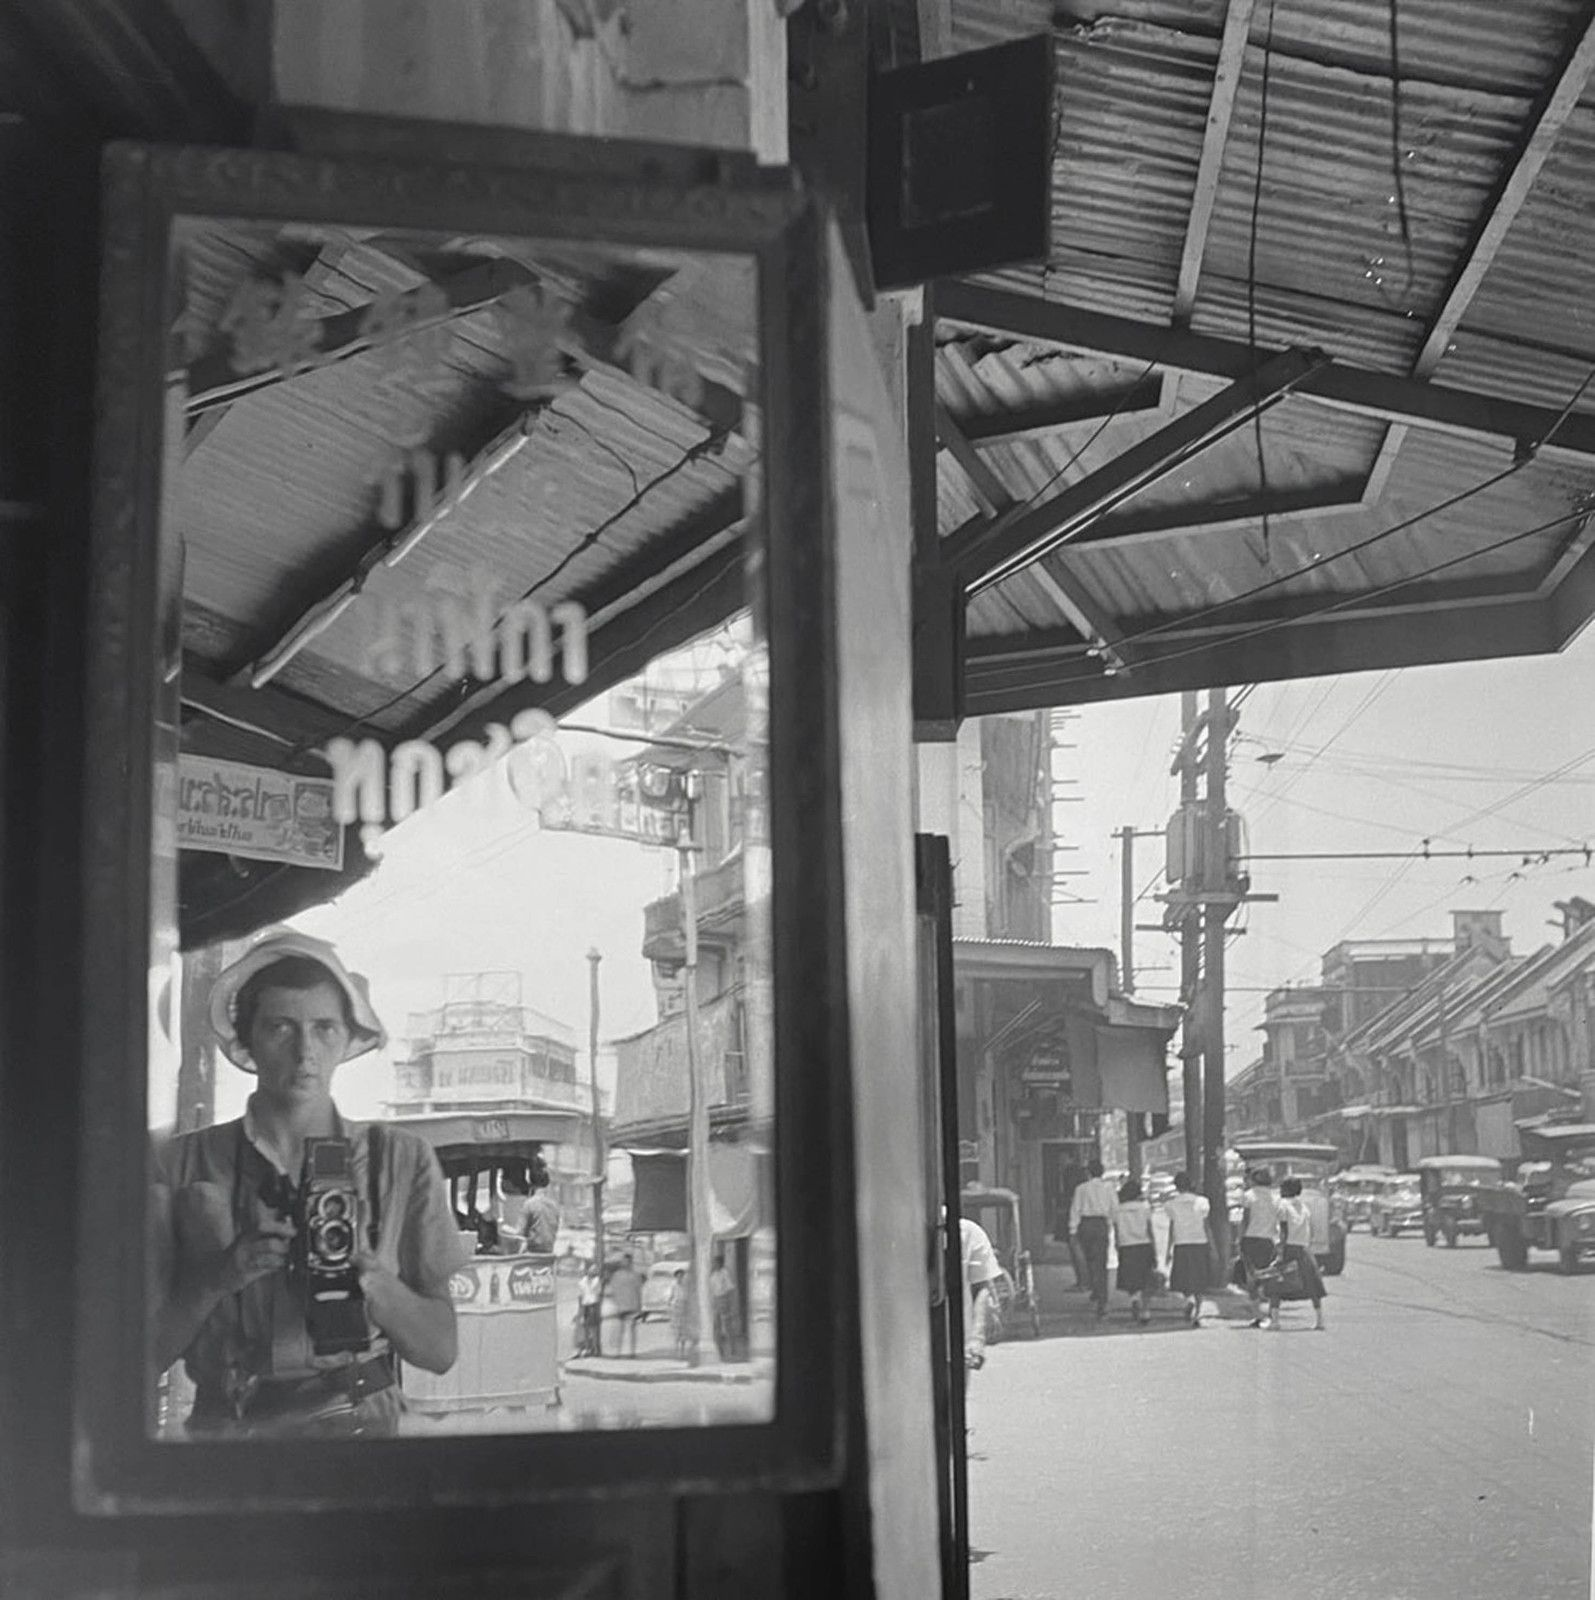 """Self-portrait, trip overseas"", 1959 de Vivian MAIER - Courtesy Les Douches la Galerie Paris"